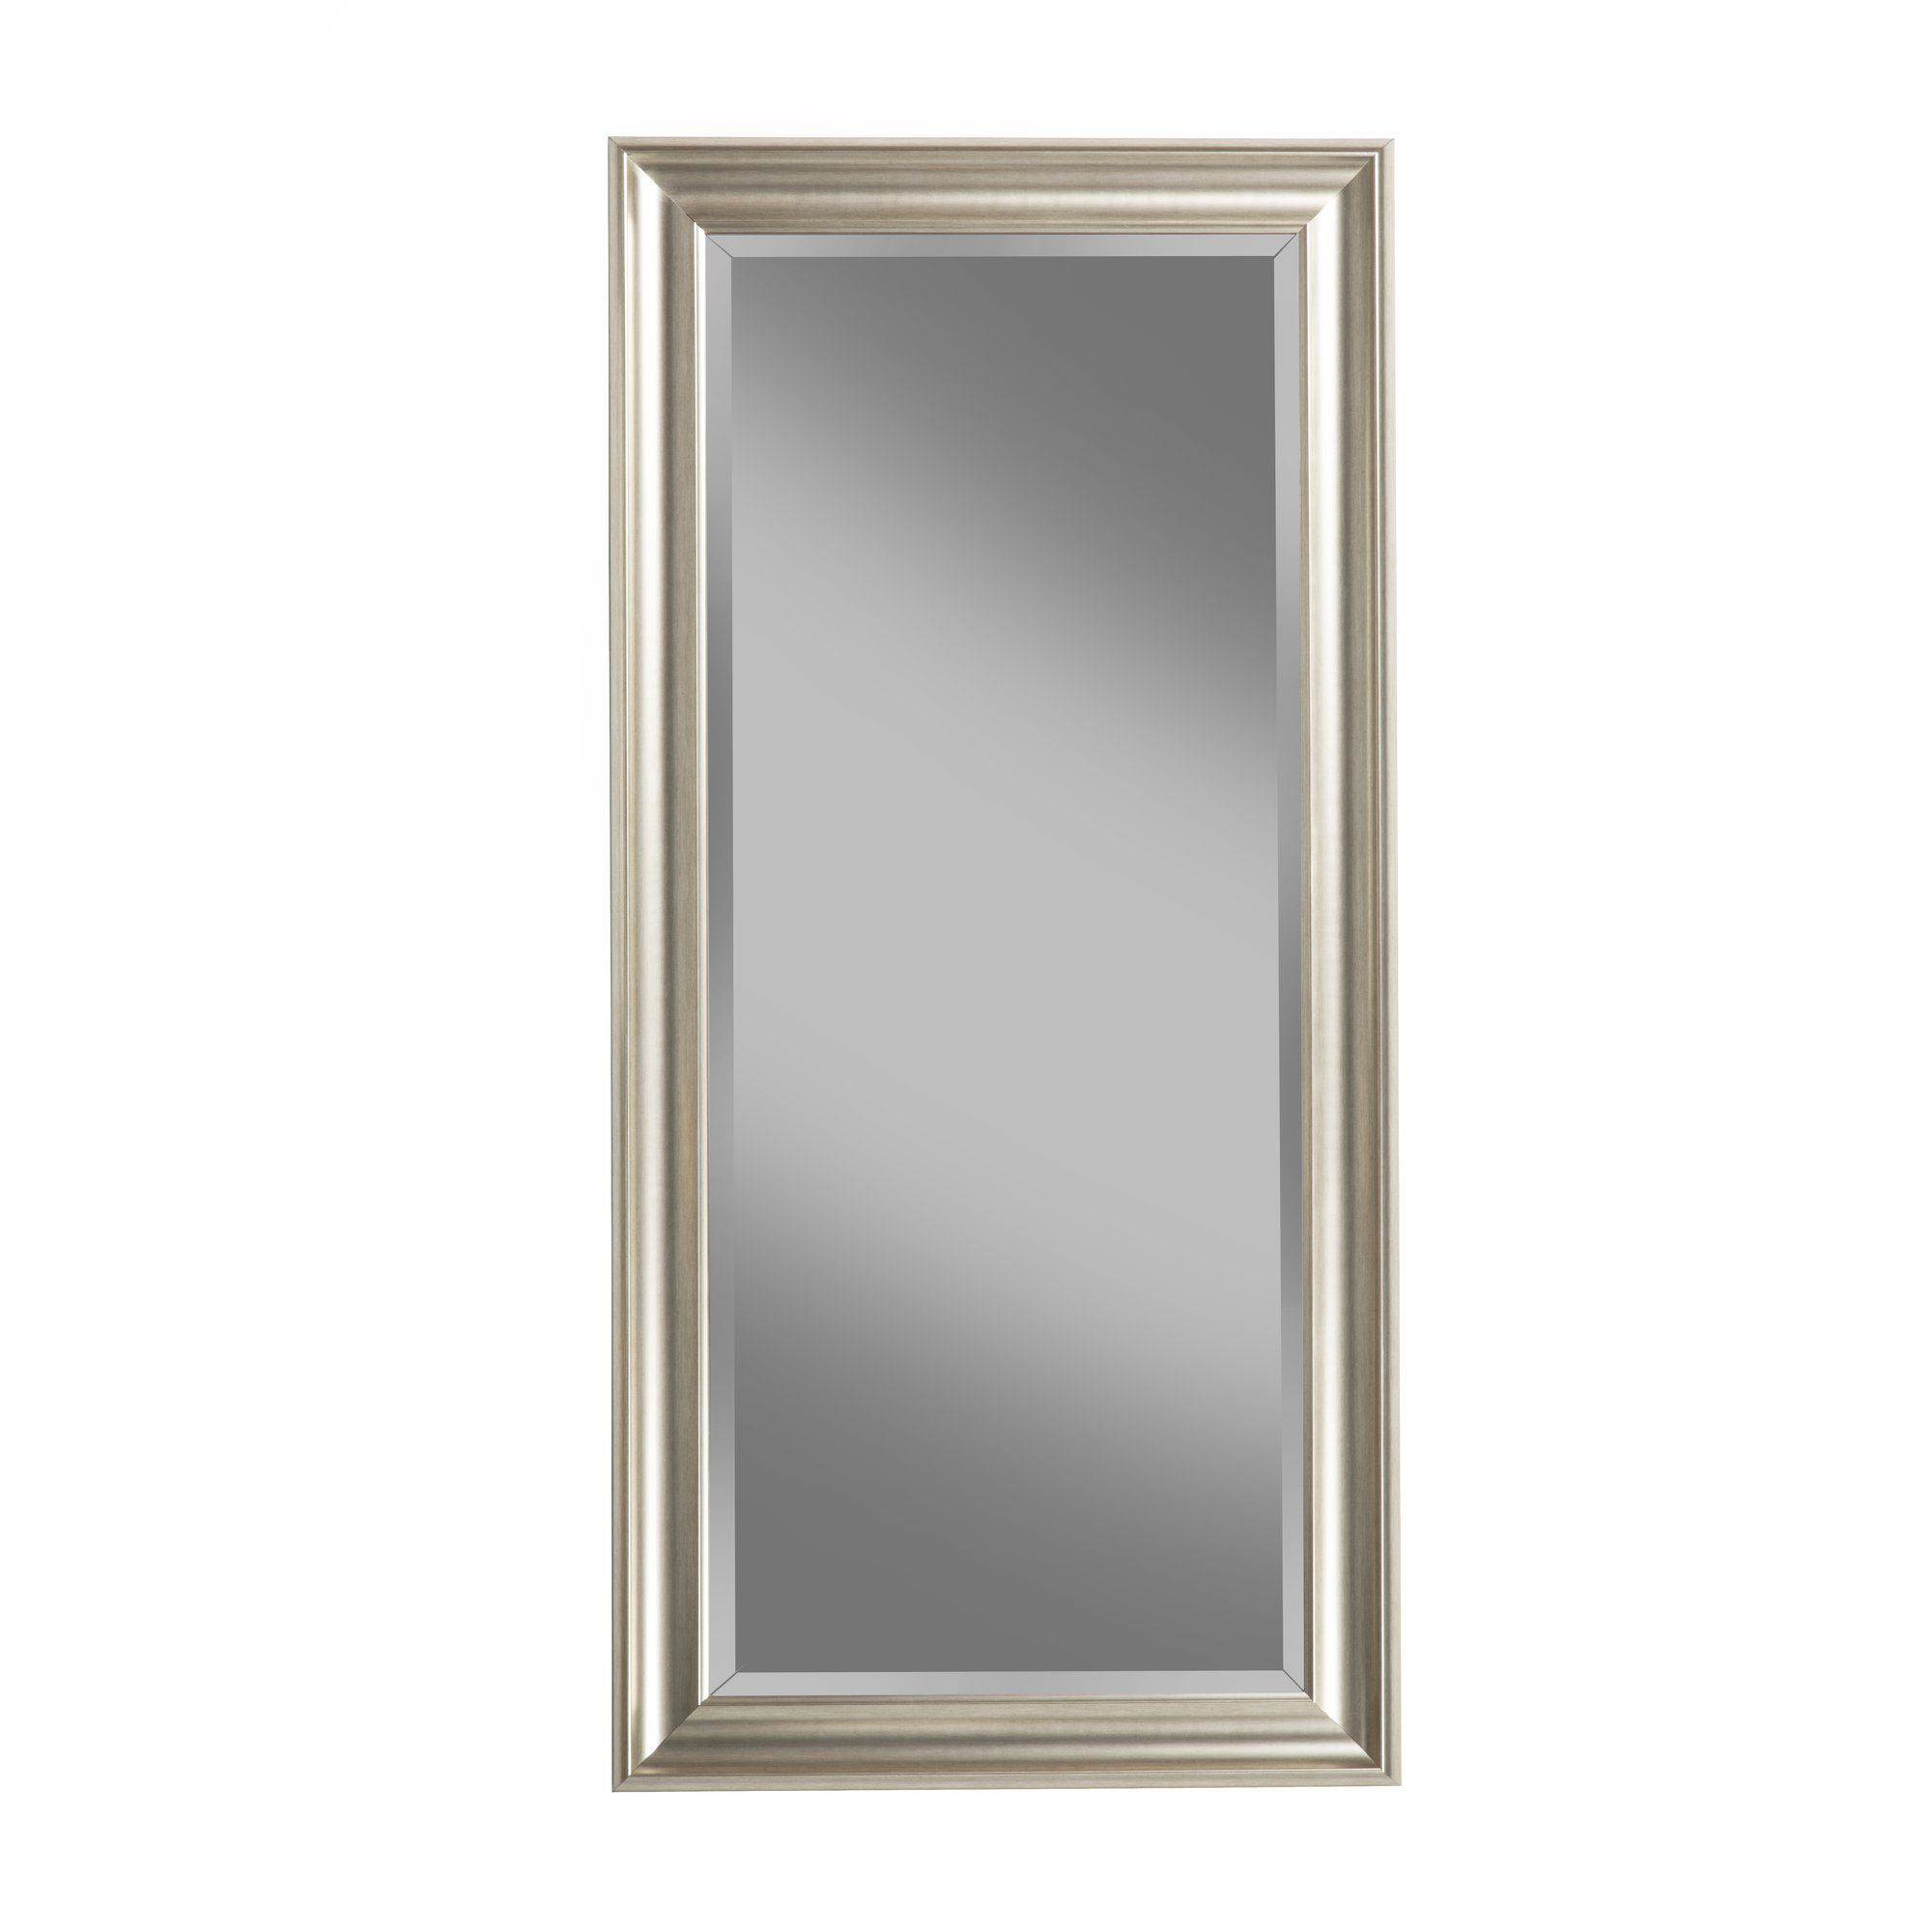 Main image zoomed leaner mirror mirror design wall